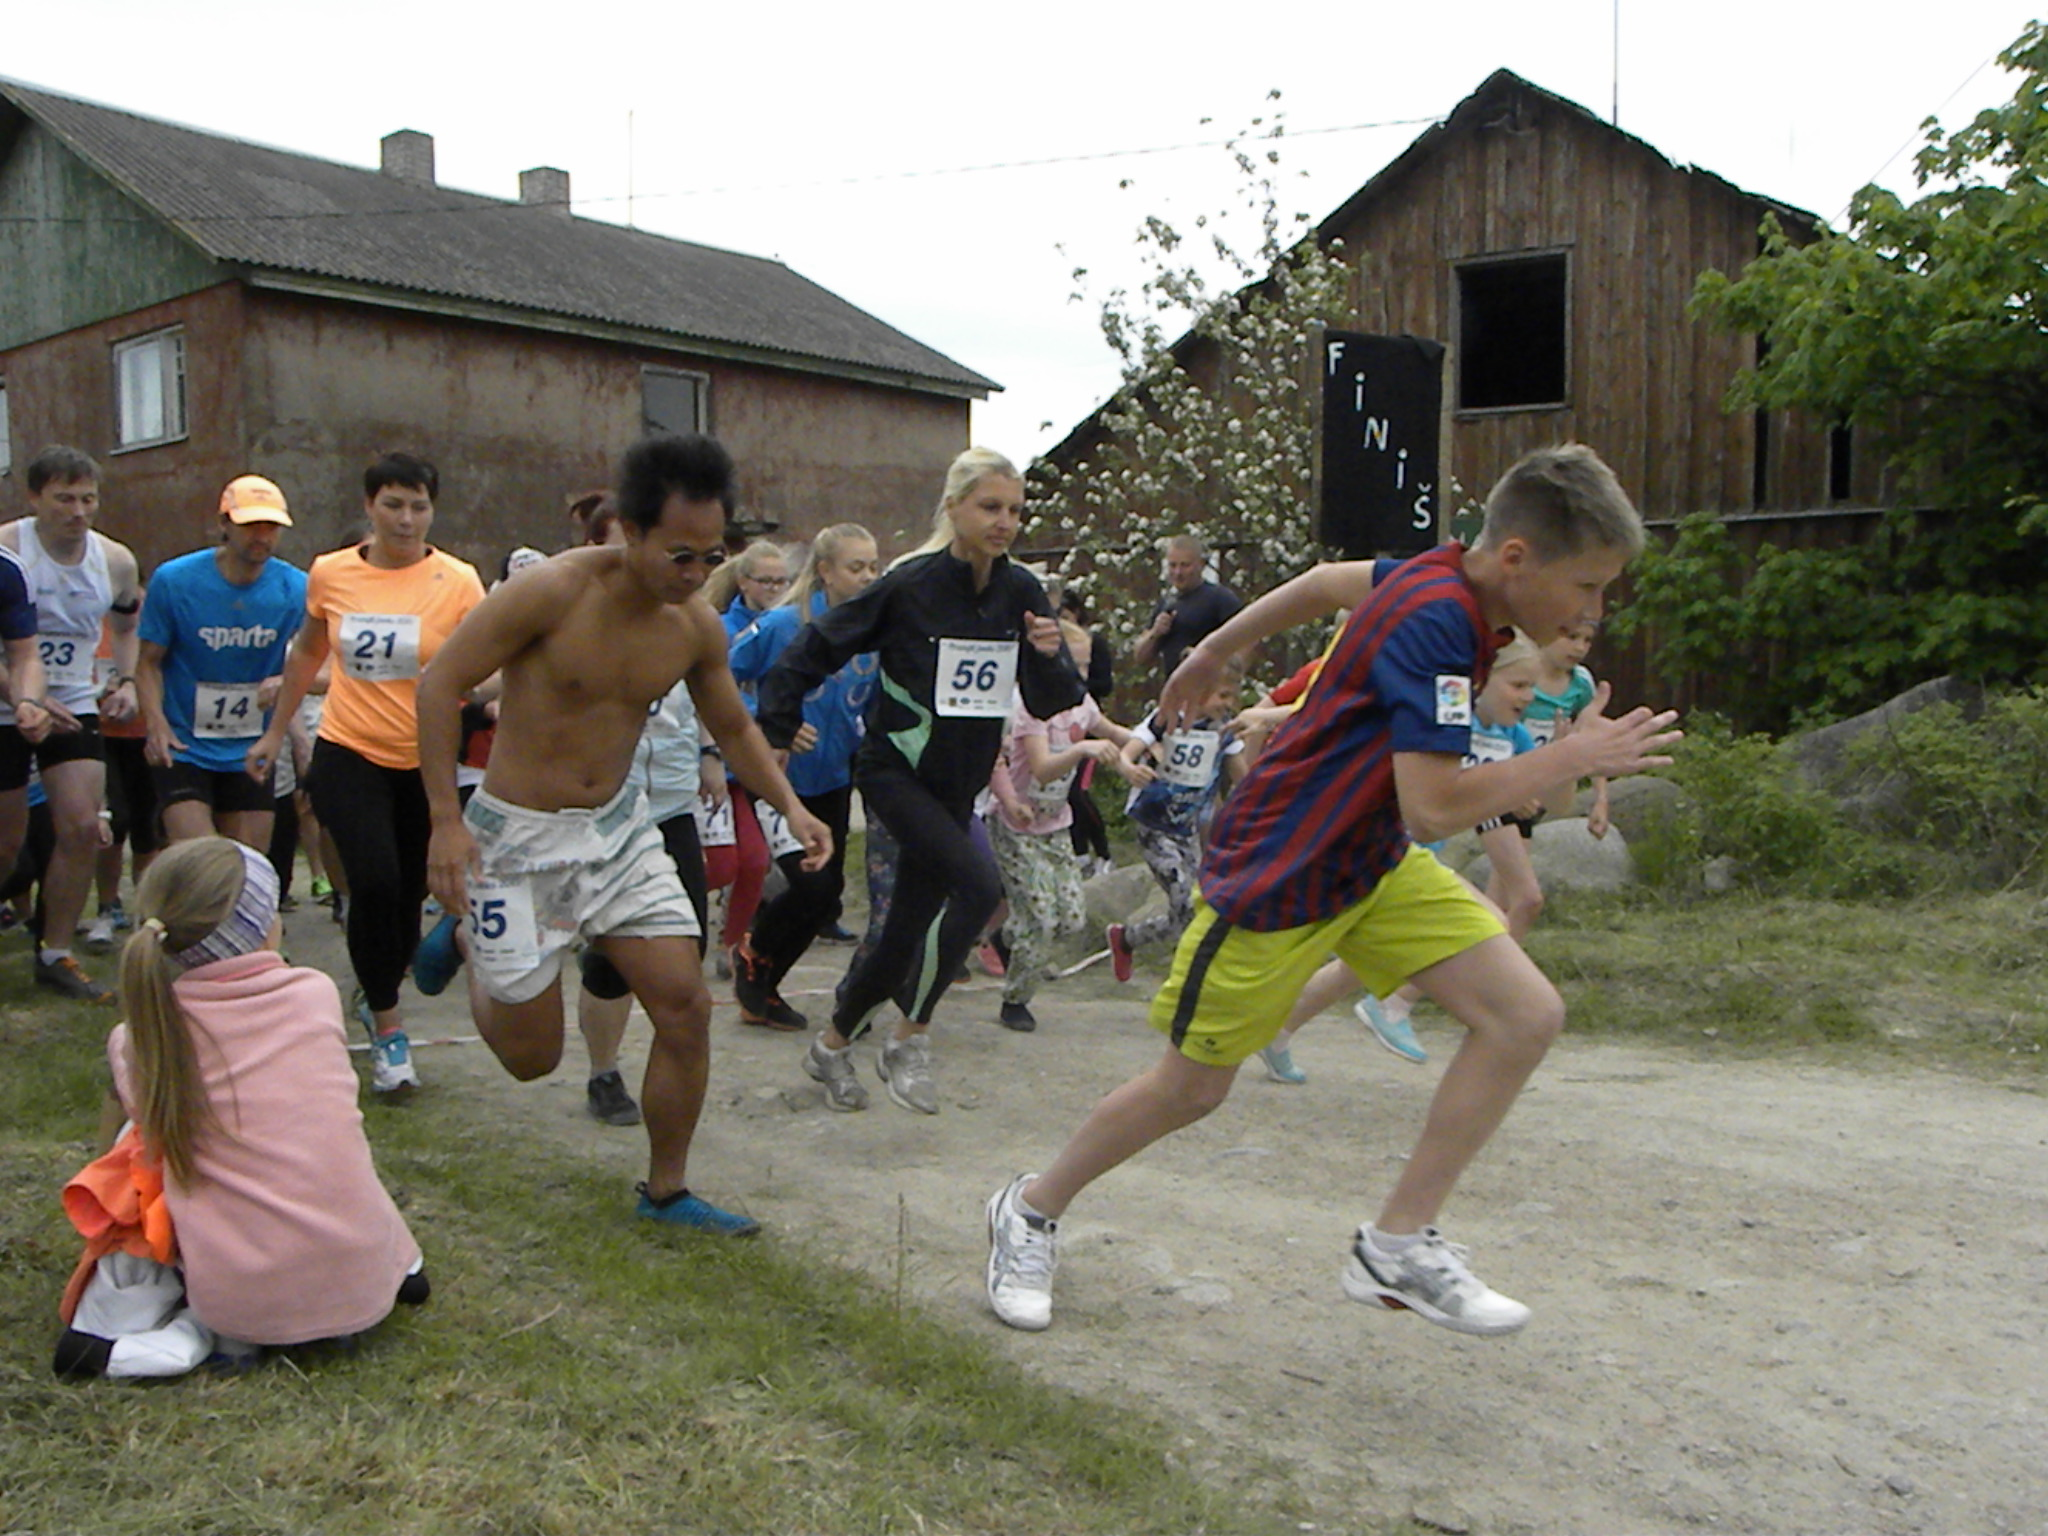 Prangli Island Day Trip from Tallinn. Prangli Run is an annual event happening for the 4th time